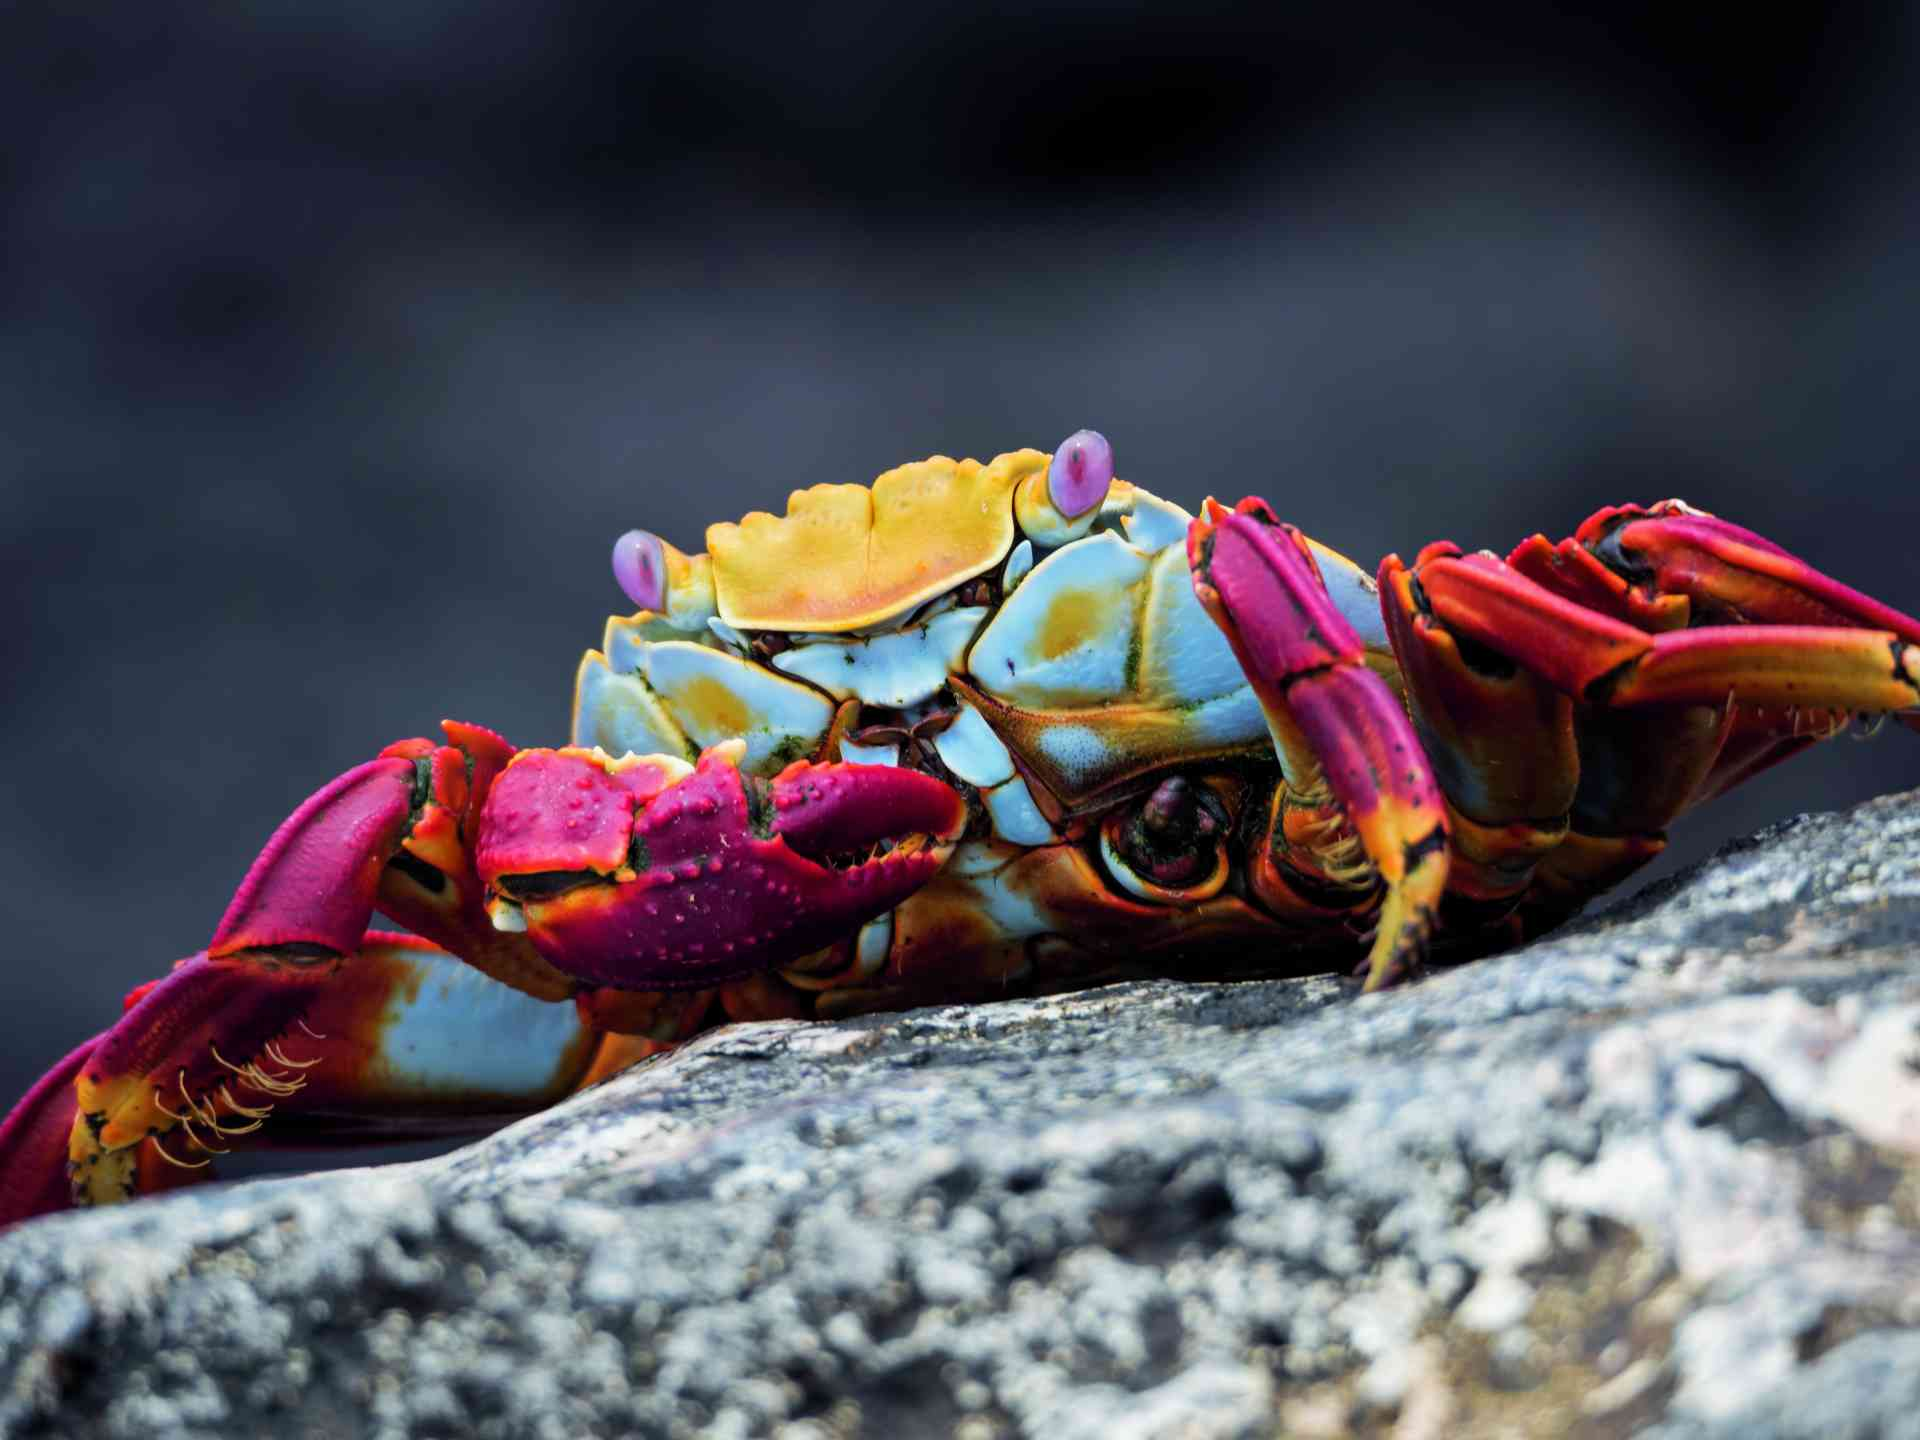 Sally Lightfoot Crab, Galapagos Islands, Ecuador by David Hein